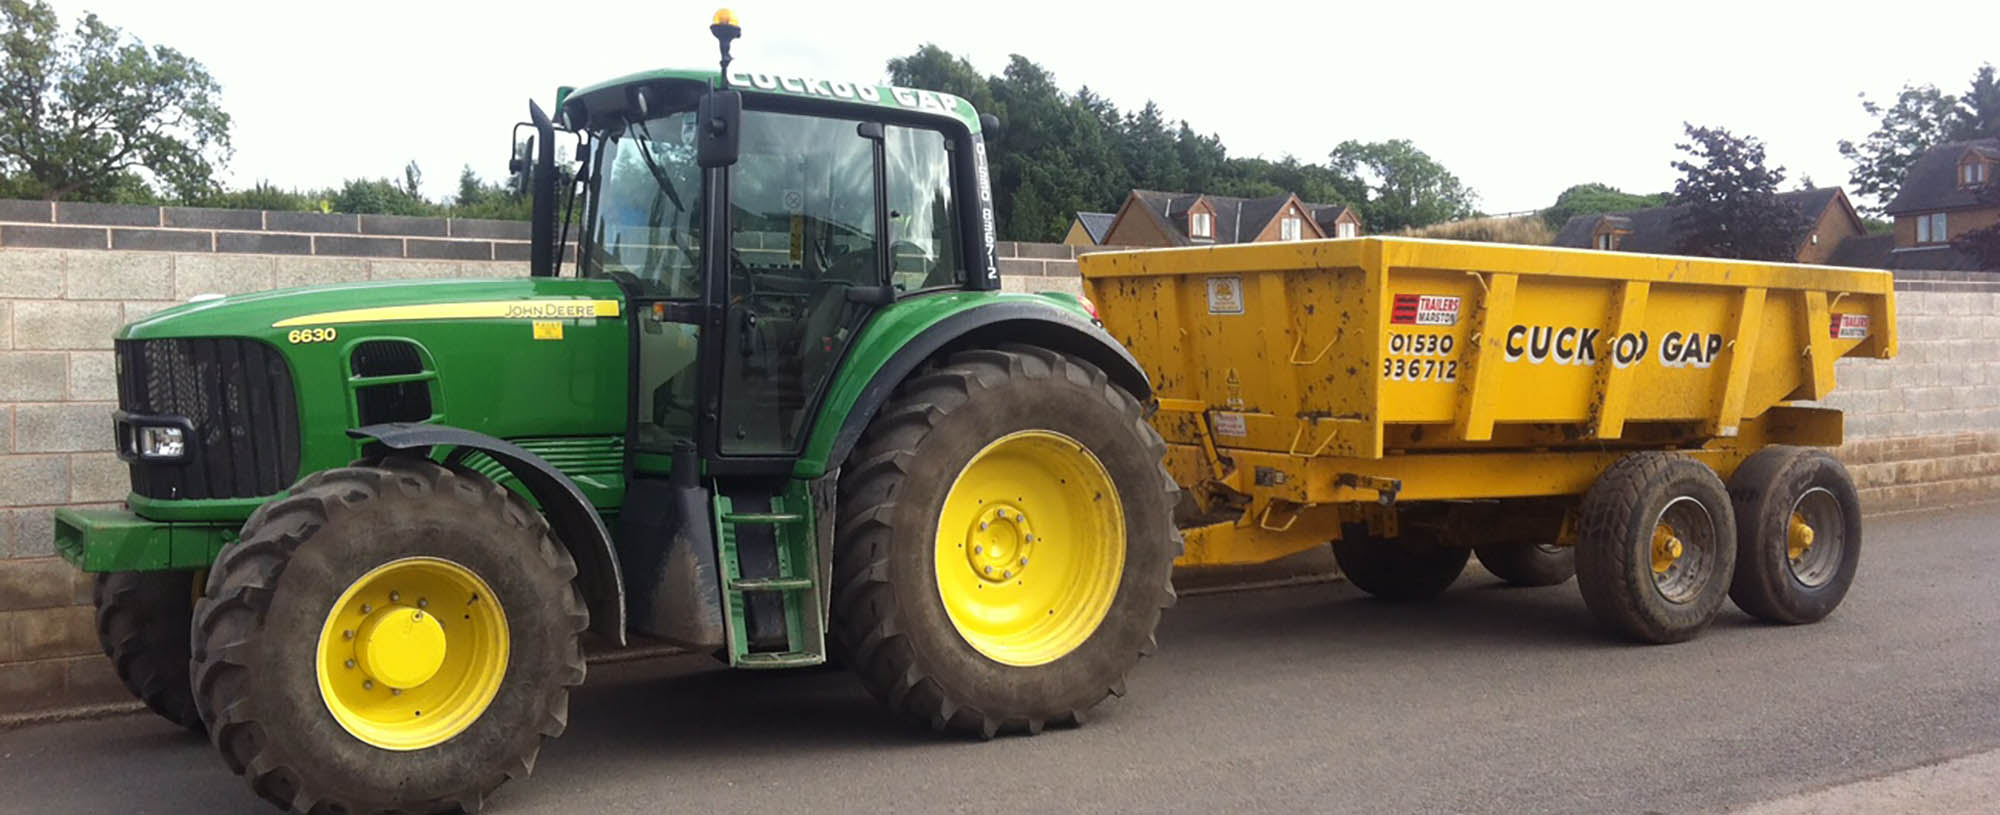 Tractor & Plant Hire Specialists